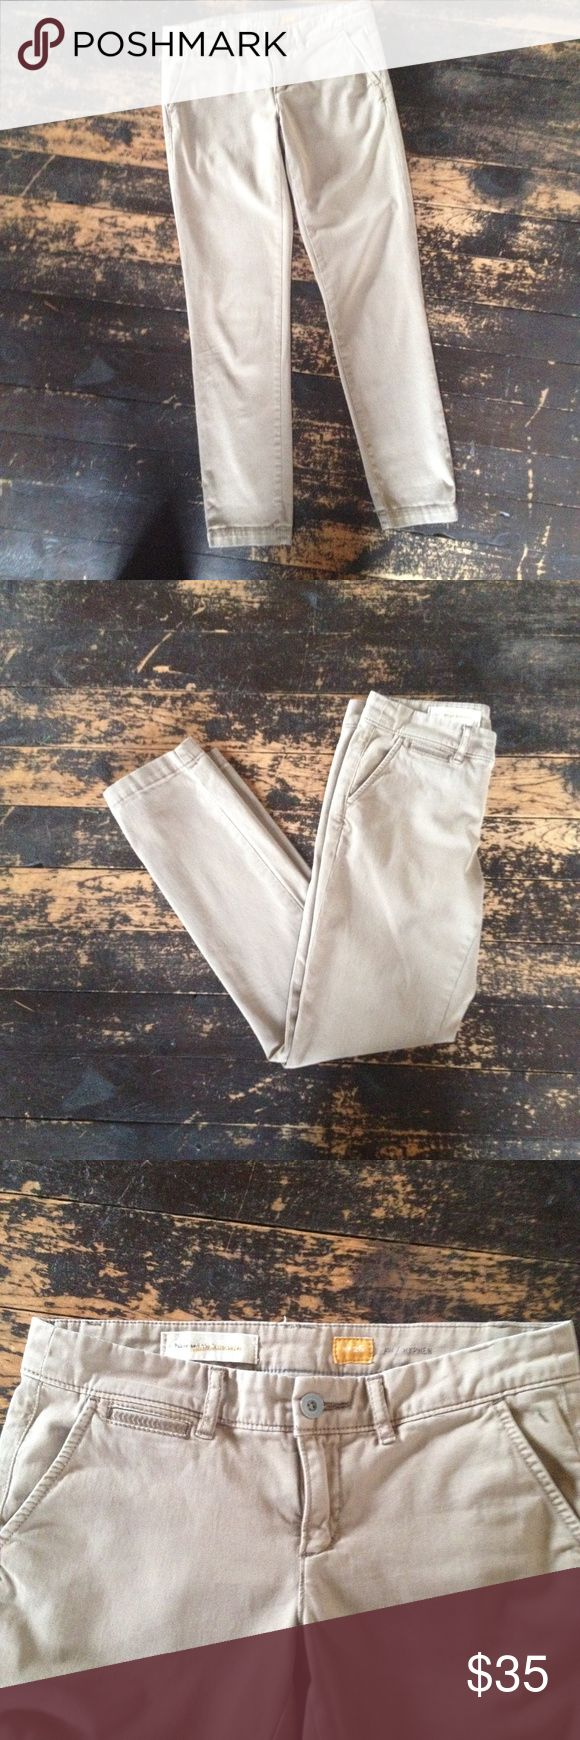 Pilcro and the Letterpress Hyphen Fit Tan Chinos Anthropologie Pilcro and the Letterpress Hyphen Fit Tan Chinos.  Great Condition Slightly relaxed and incredibly soft Front Slant, Back Welt Pockets Machine Wash Inseam 30, Rise 8 99% Cotton, 1% Spandex Anthropologie Pants